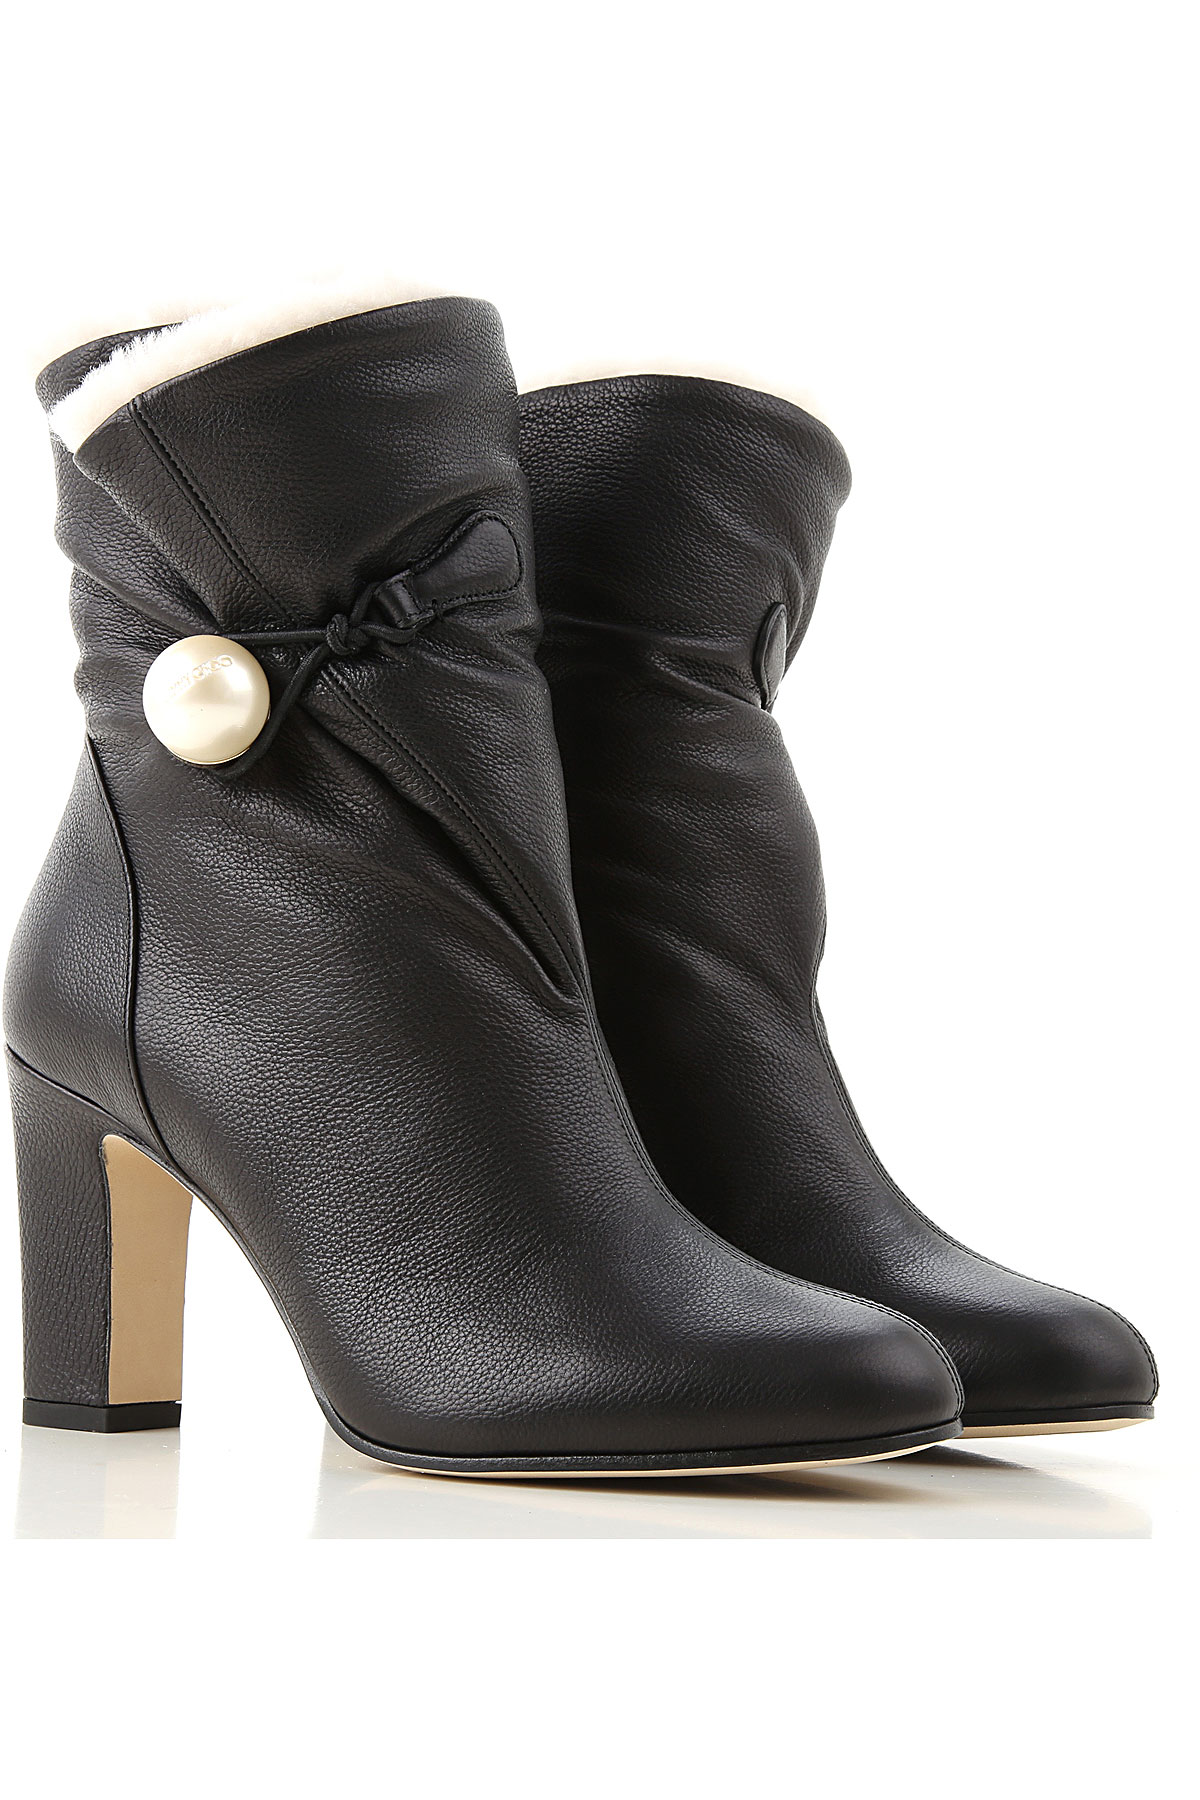 Jimmy Choo Boots for Women, Booties On Sale in Outlet, Black, Leather, 2019, 6.5 8.5